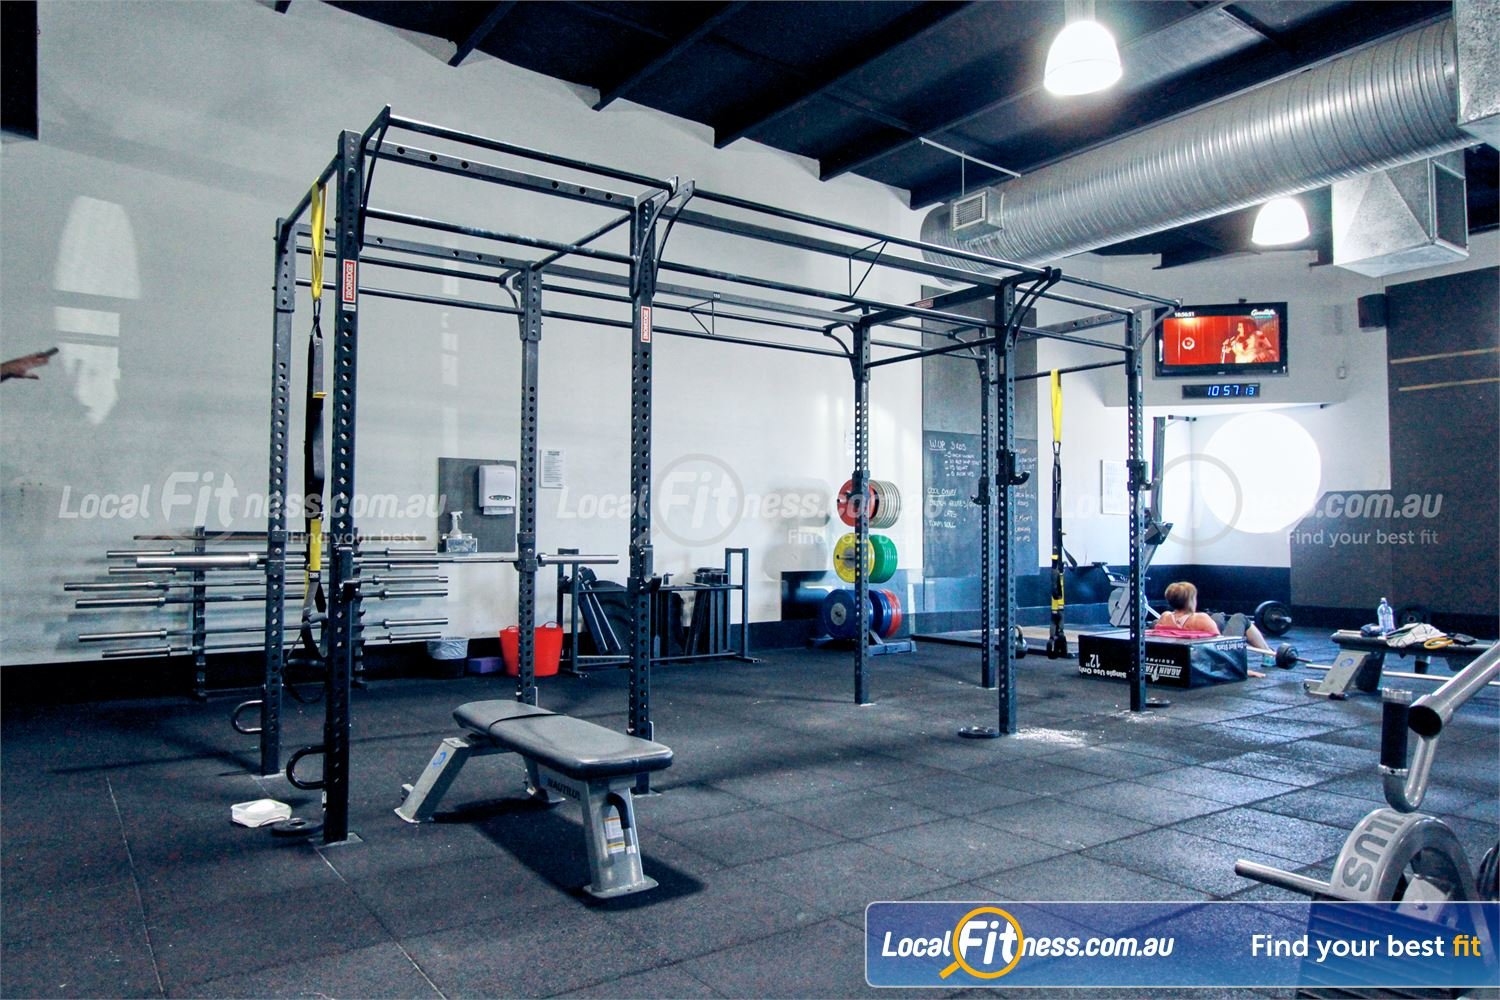 Goodlife Health Clubs Near Montrose Our Mooroolbark gym includes over 2000 sq/m under one roof.